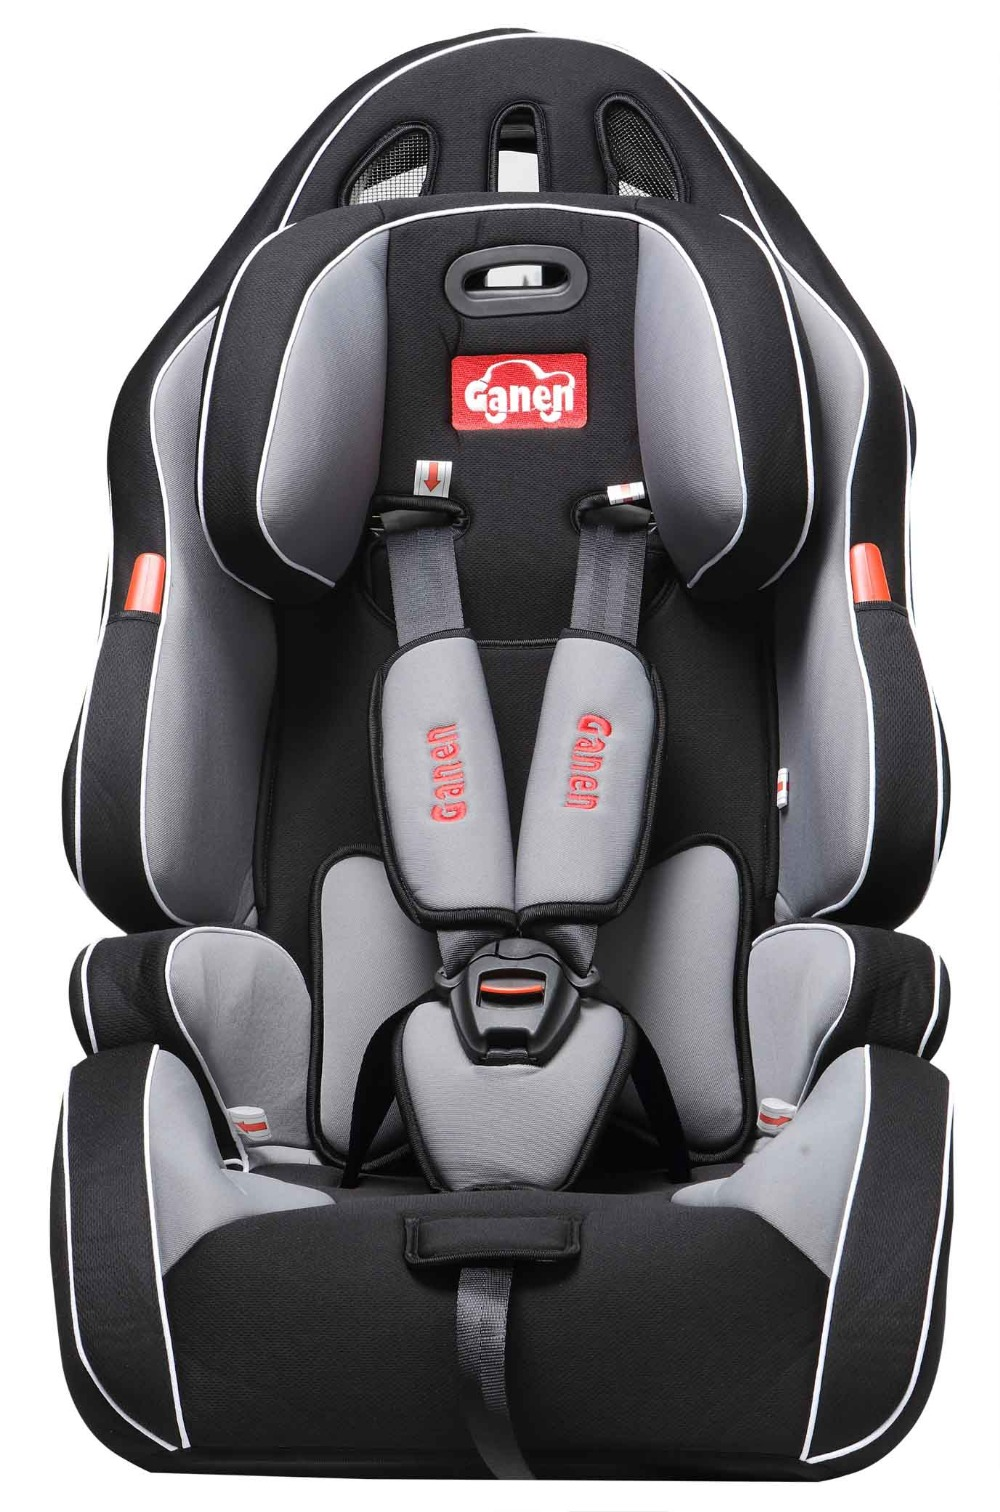 most portable car seat for 9 month to 12 years old children safety baby booster car seat buy. Black Bedroom Furniture Sets. Home Design Ideas